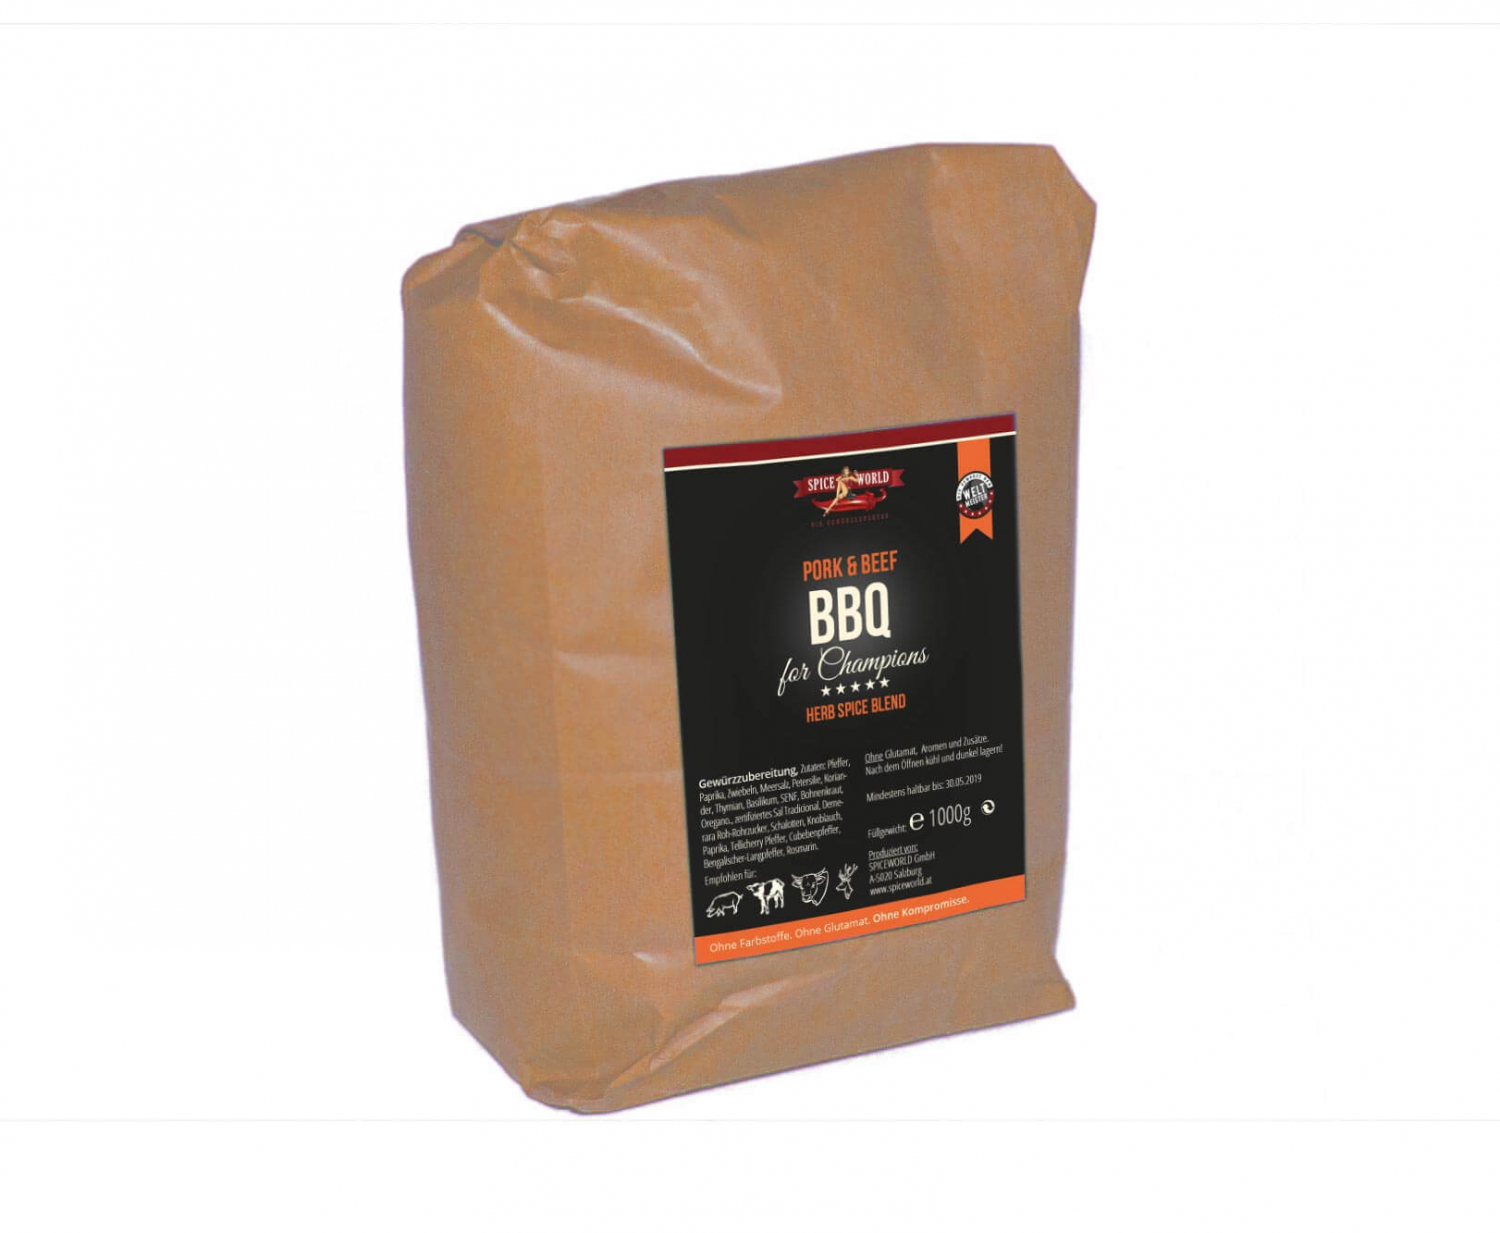 Barbecue-for-Champions Pork & Beef - Herb Spice Blend, 1000g Beutel 1kg Beutel